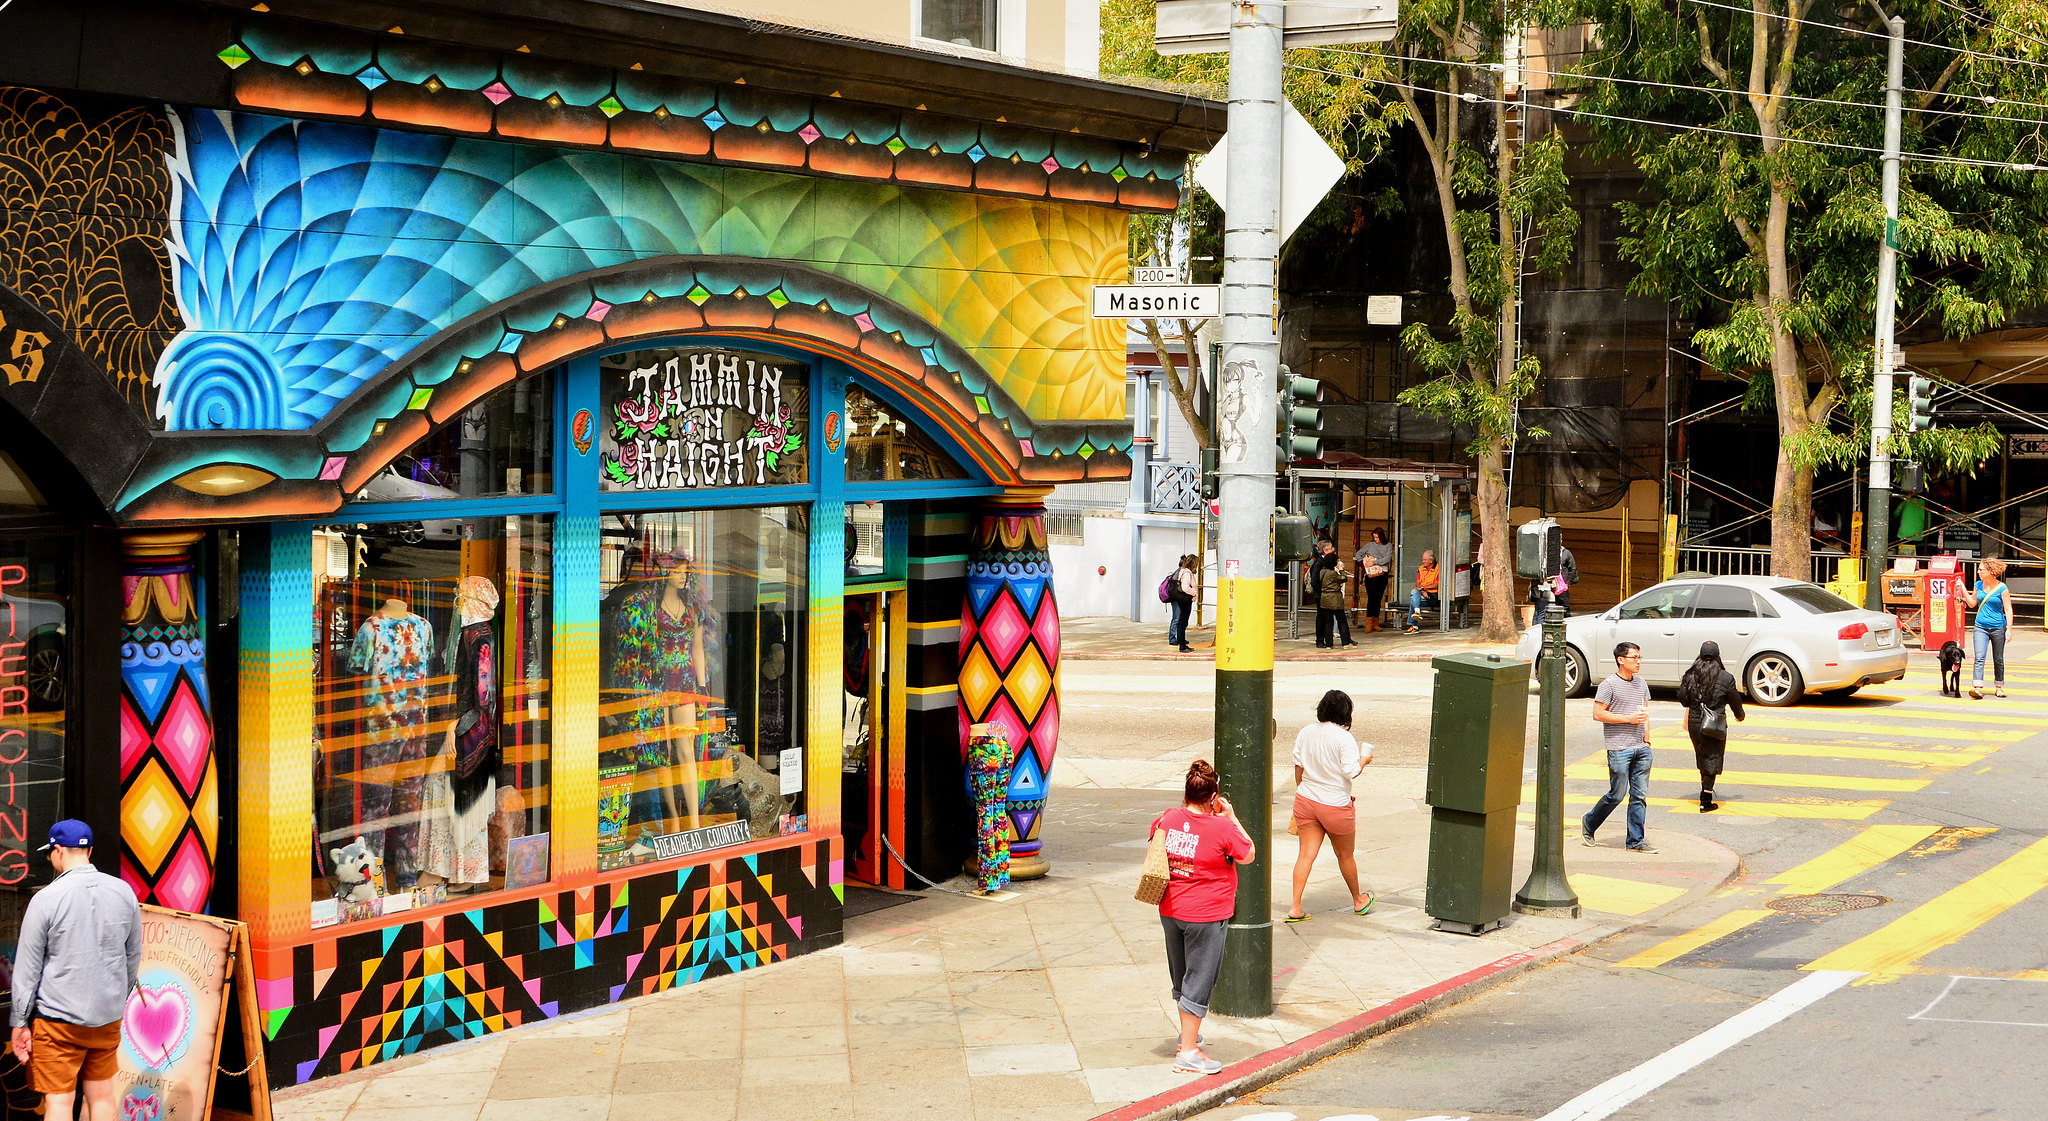 Love on Haight (formerly Jammin on Haight) - photo by Mike McBey under CC BY 2.0